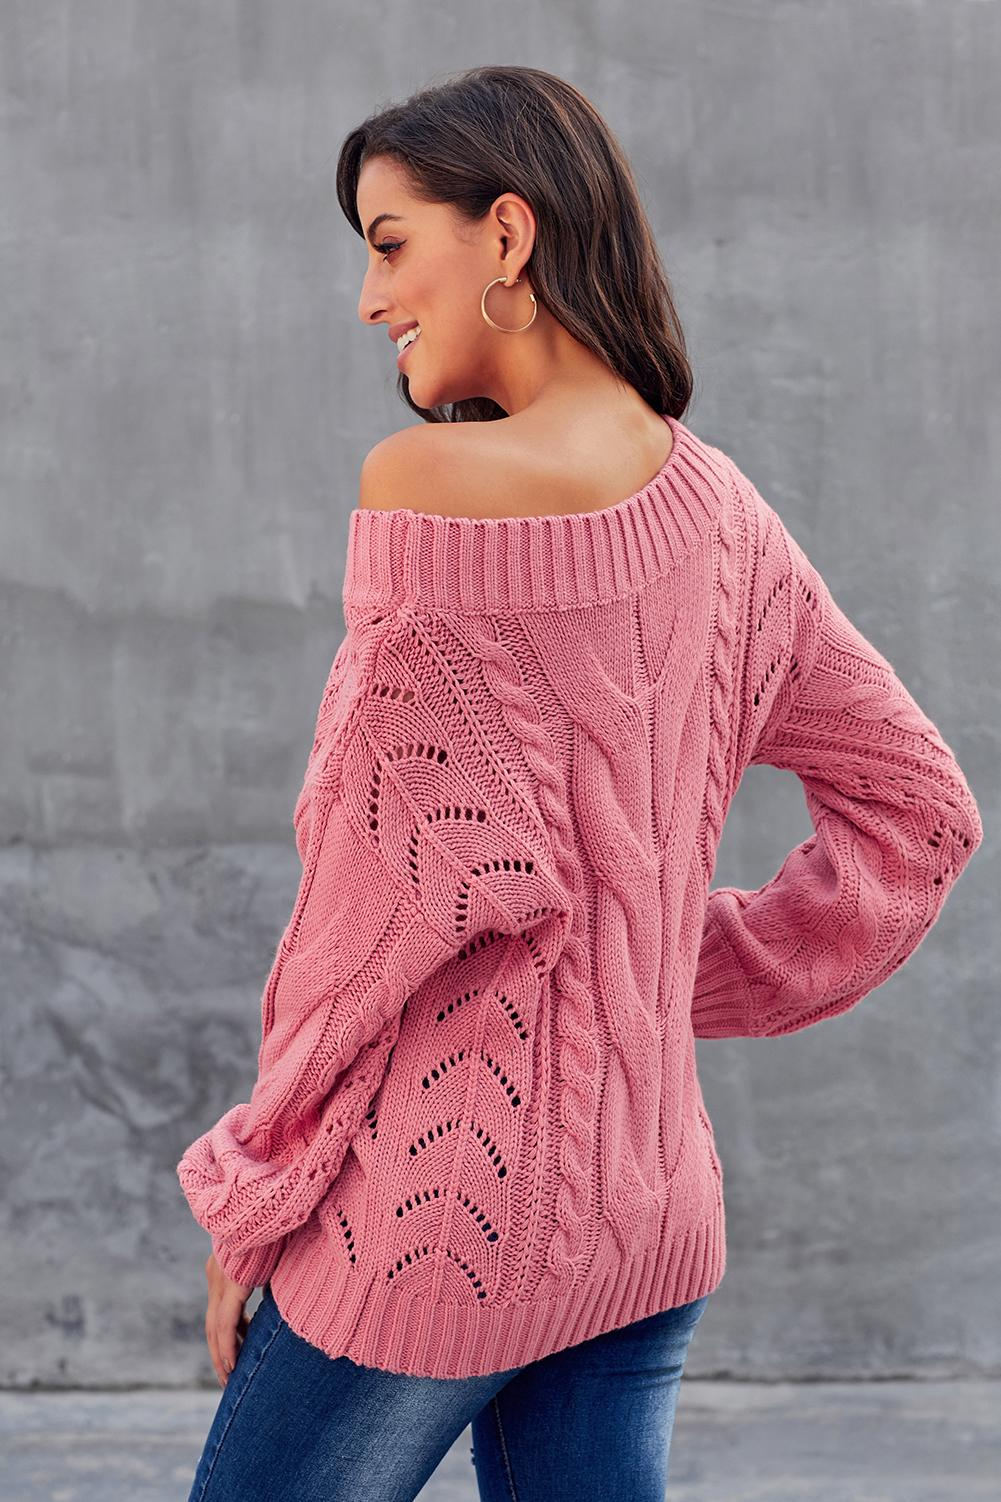 Pink Chunky Oversized Pullover Sweater Sweaters & Cardigans Discount Designer Fashion Clothes Shoes Bags Women Men Kids Children Black Owned Business